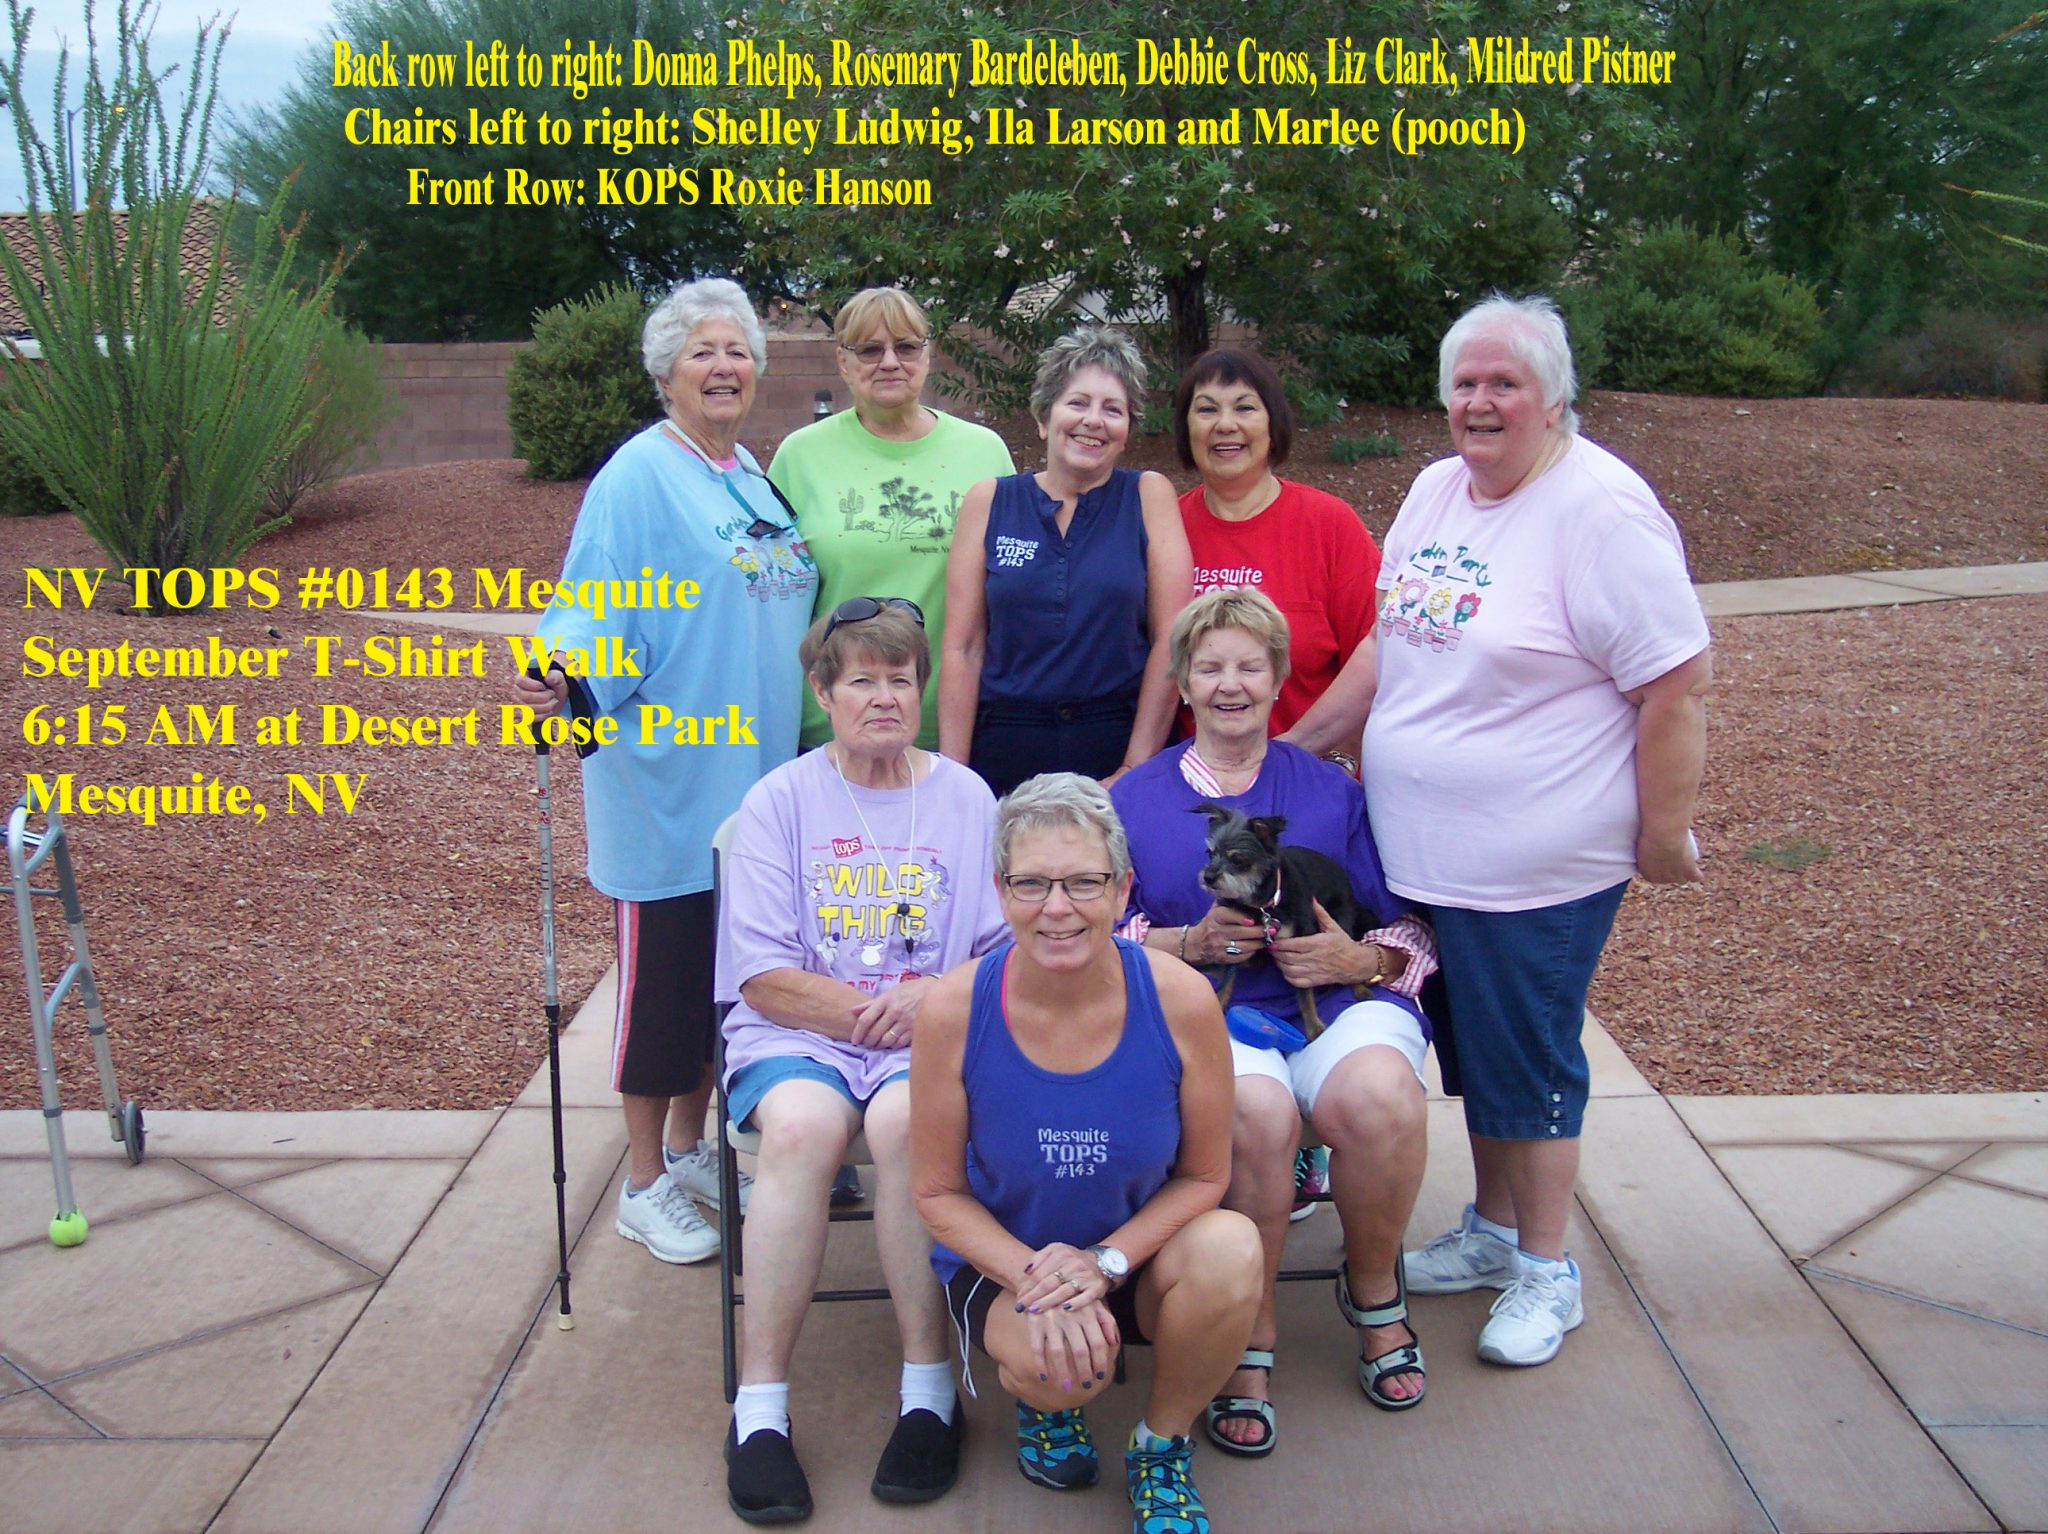 TOPS members take a walk in the park